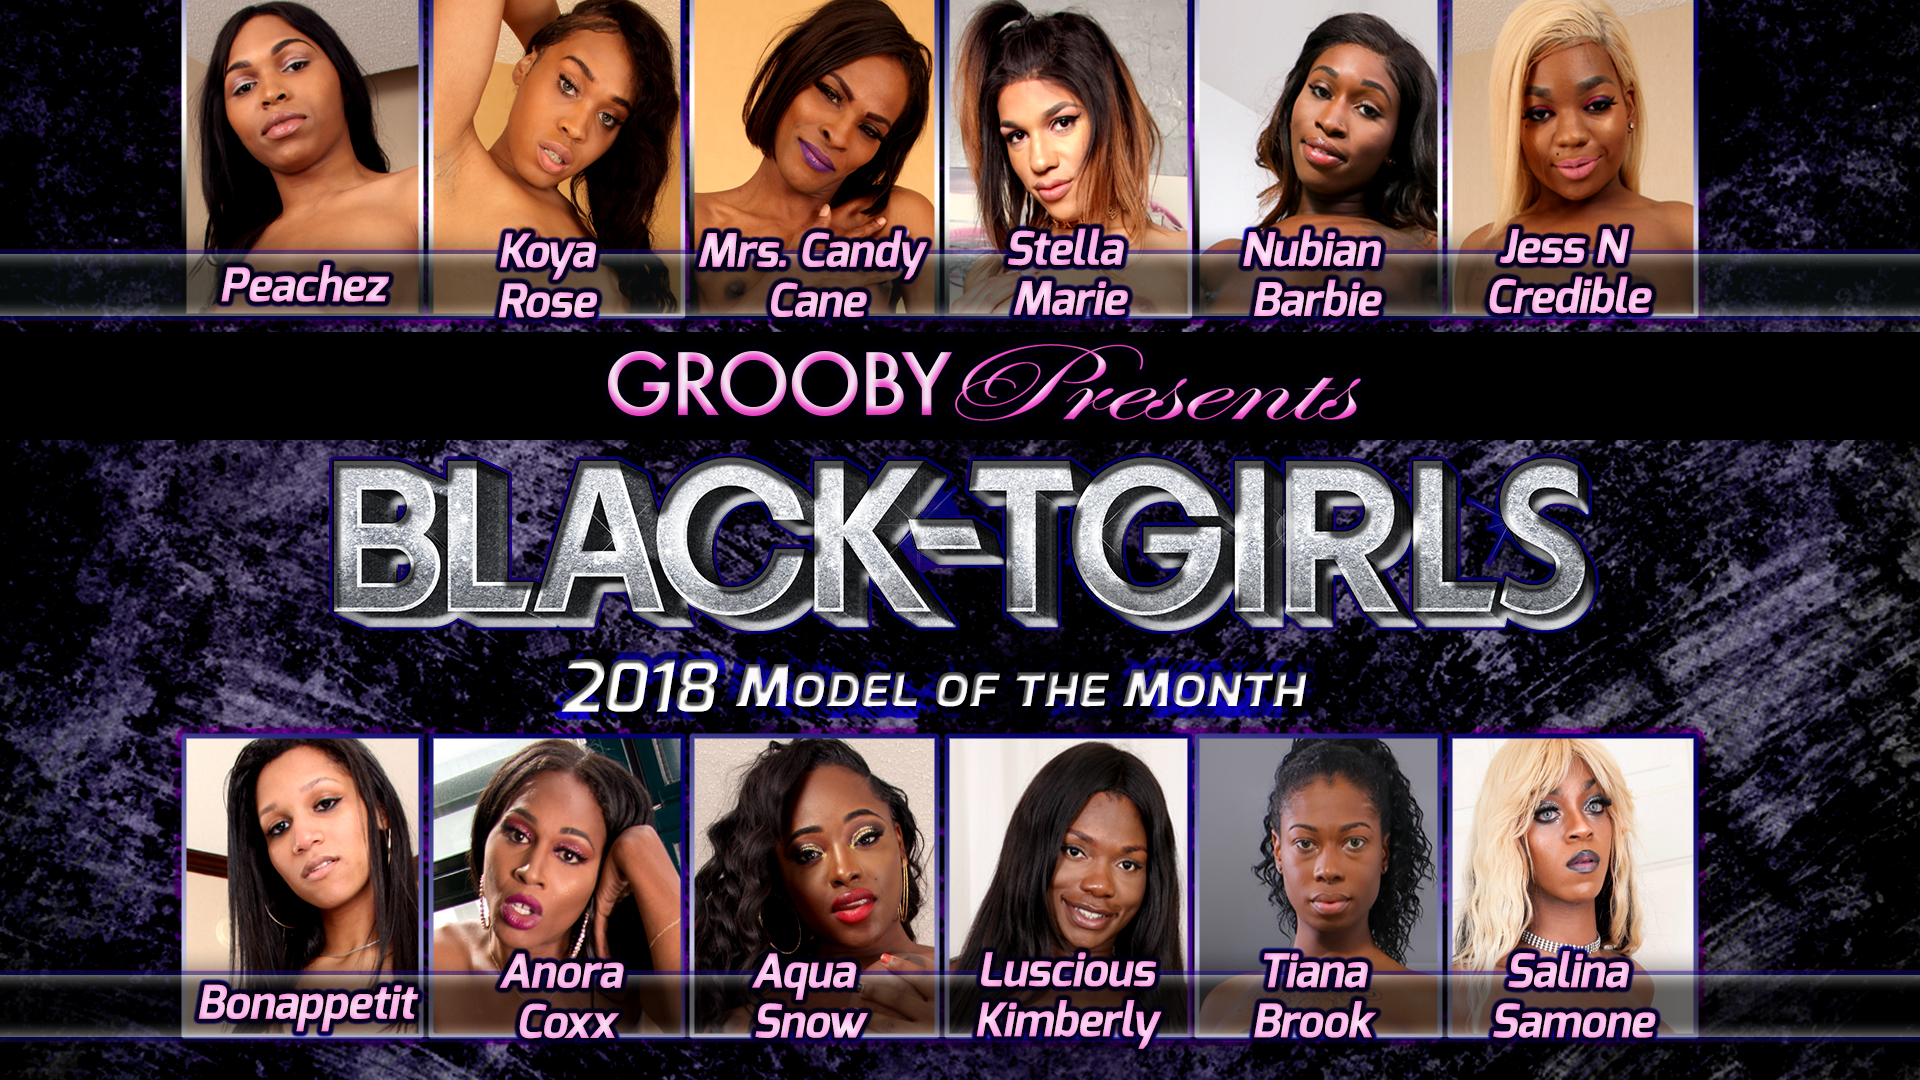 2018 Black Tgirls DVD Trailer